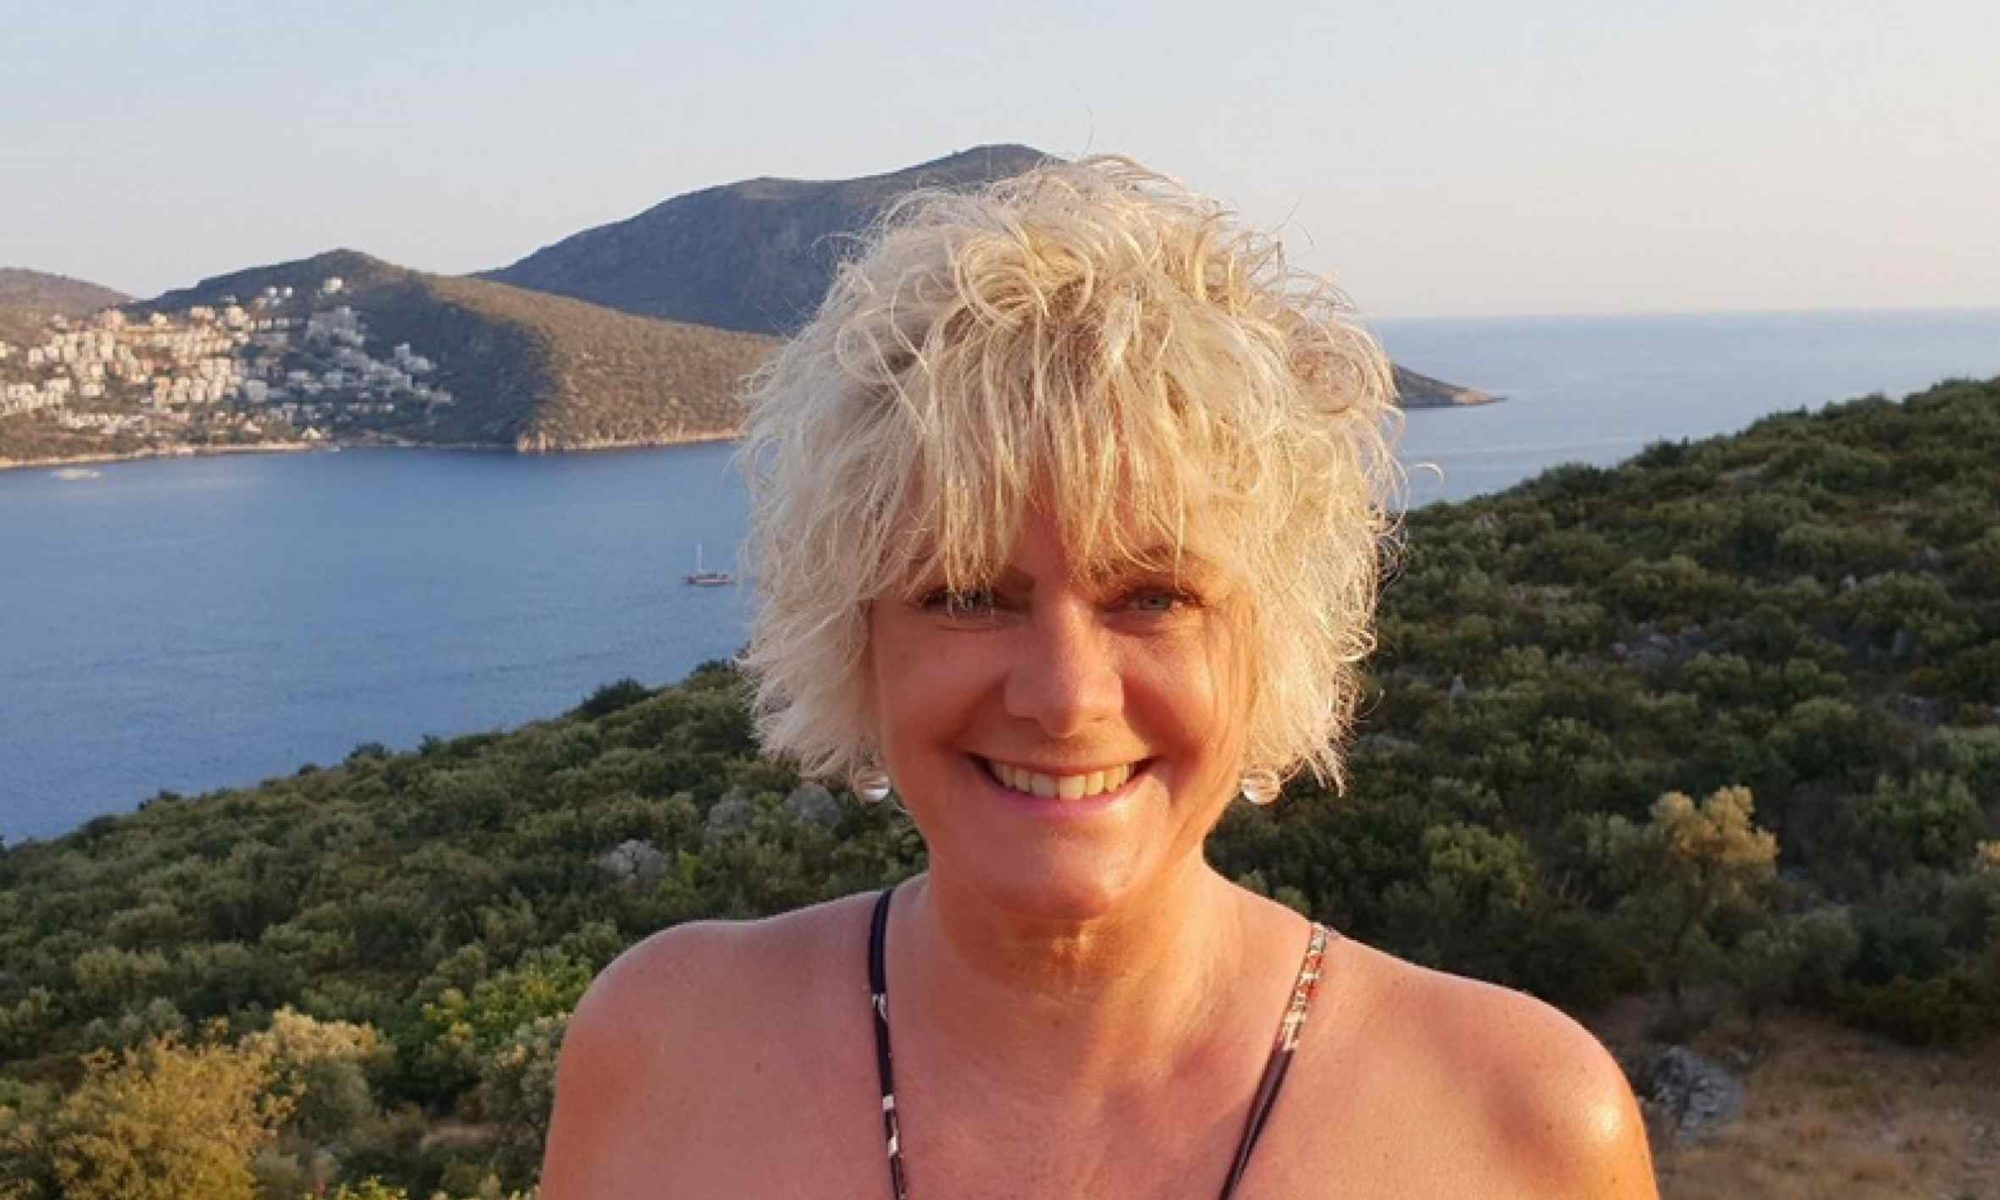 Novelist and poet Claire Dyer – as featured in our Author Interviews Claire Dyer blog piece